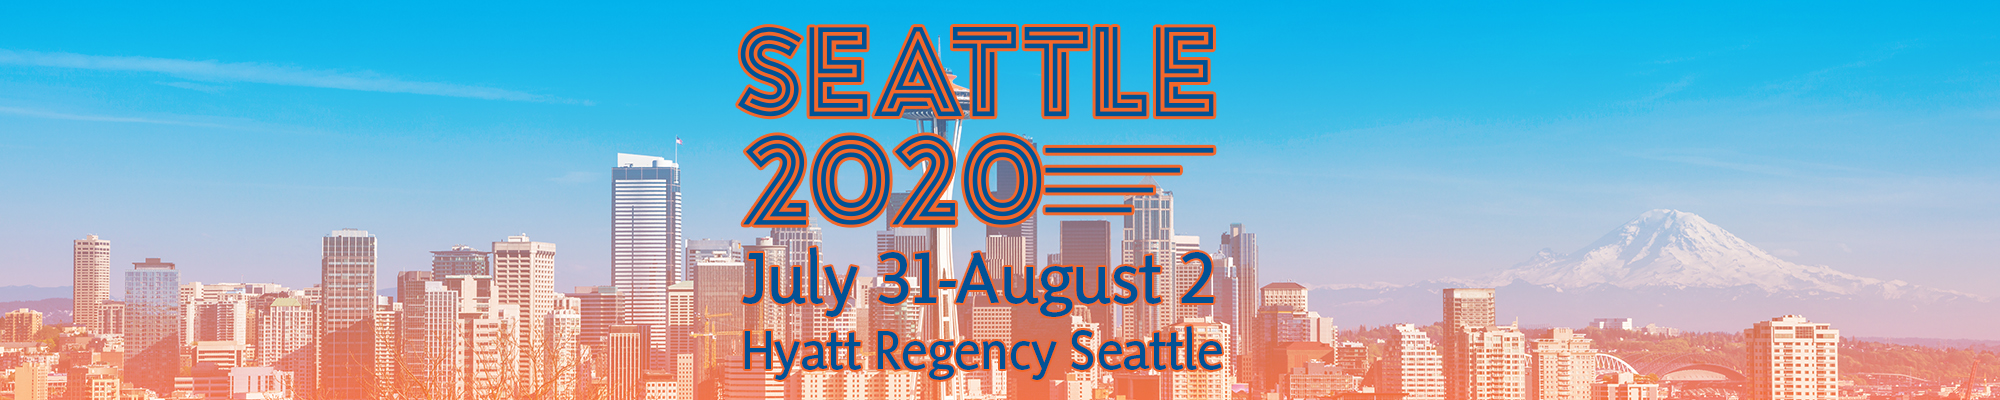 Save the date for the 27th Annual OCD Conference. July 31-August 2, 2020 in Seattle, WA